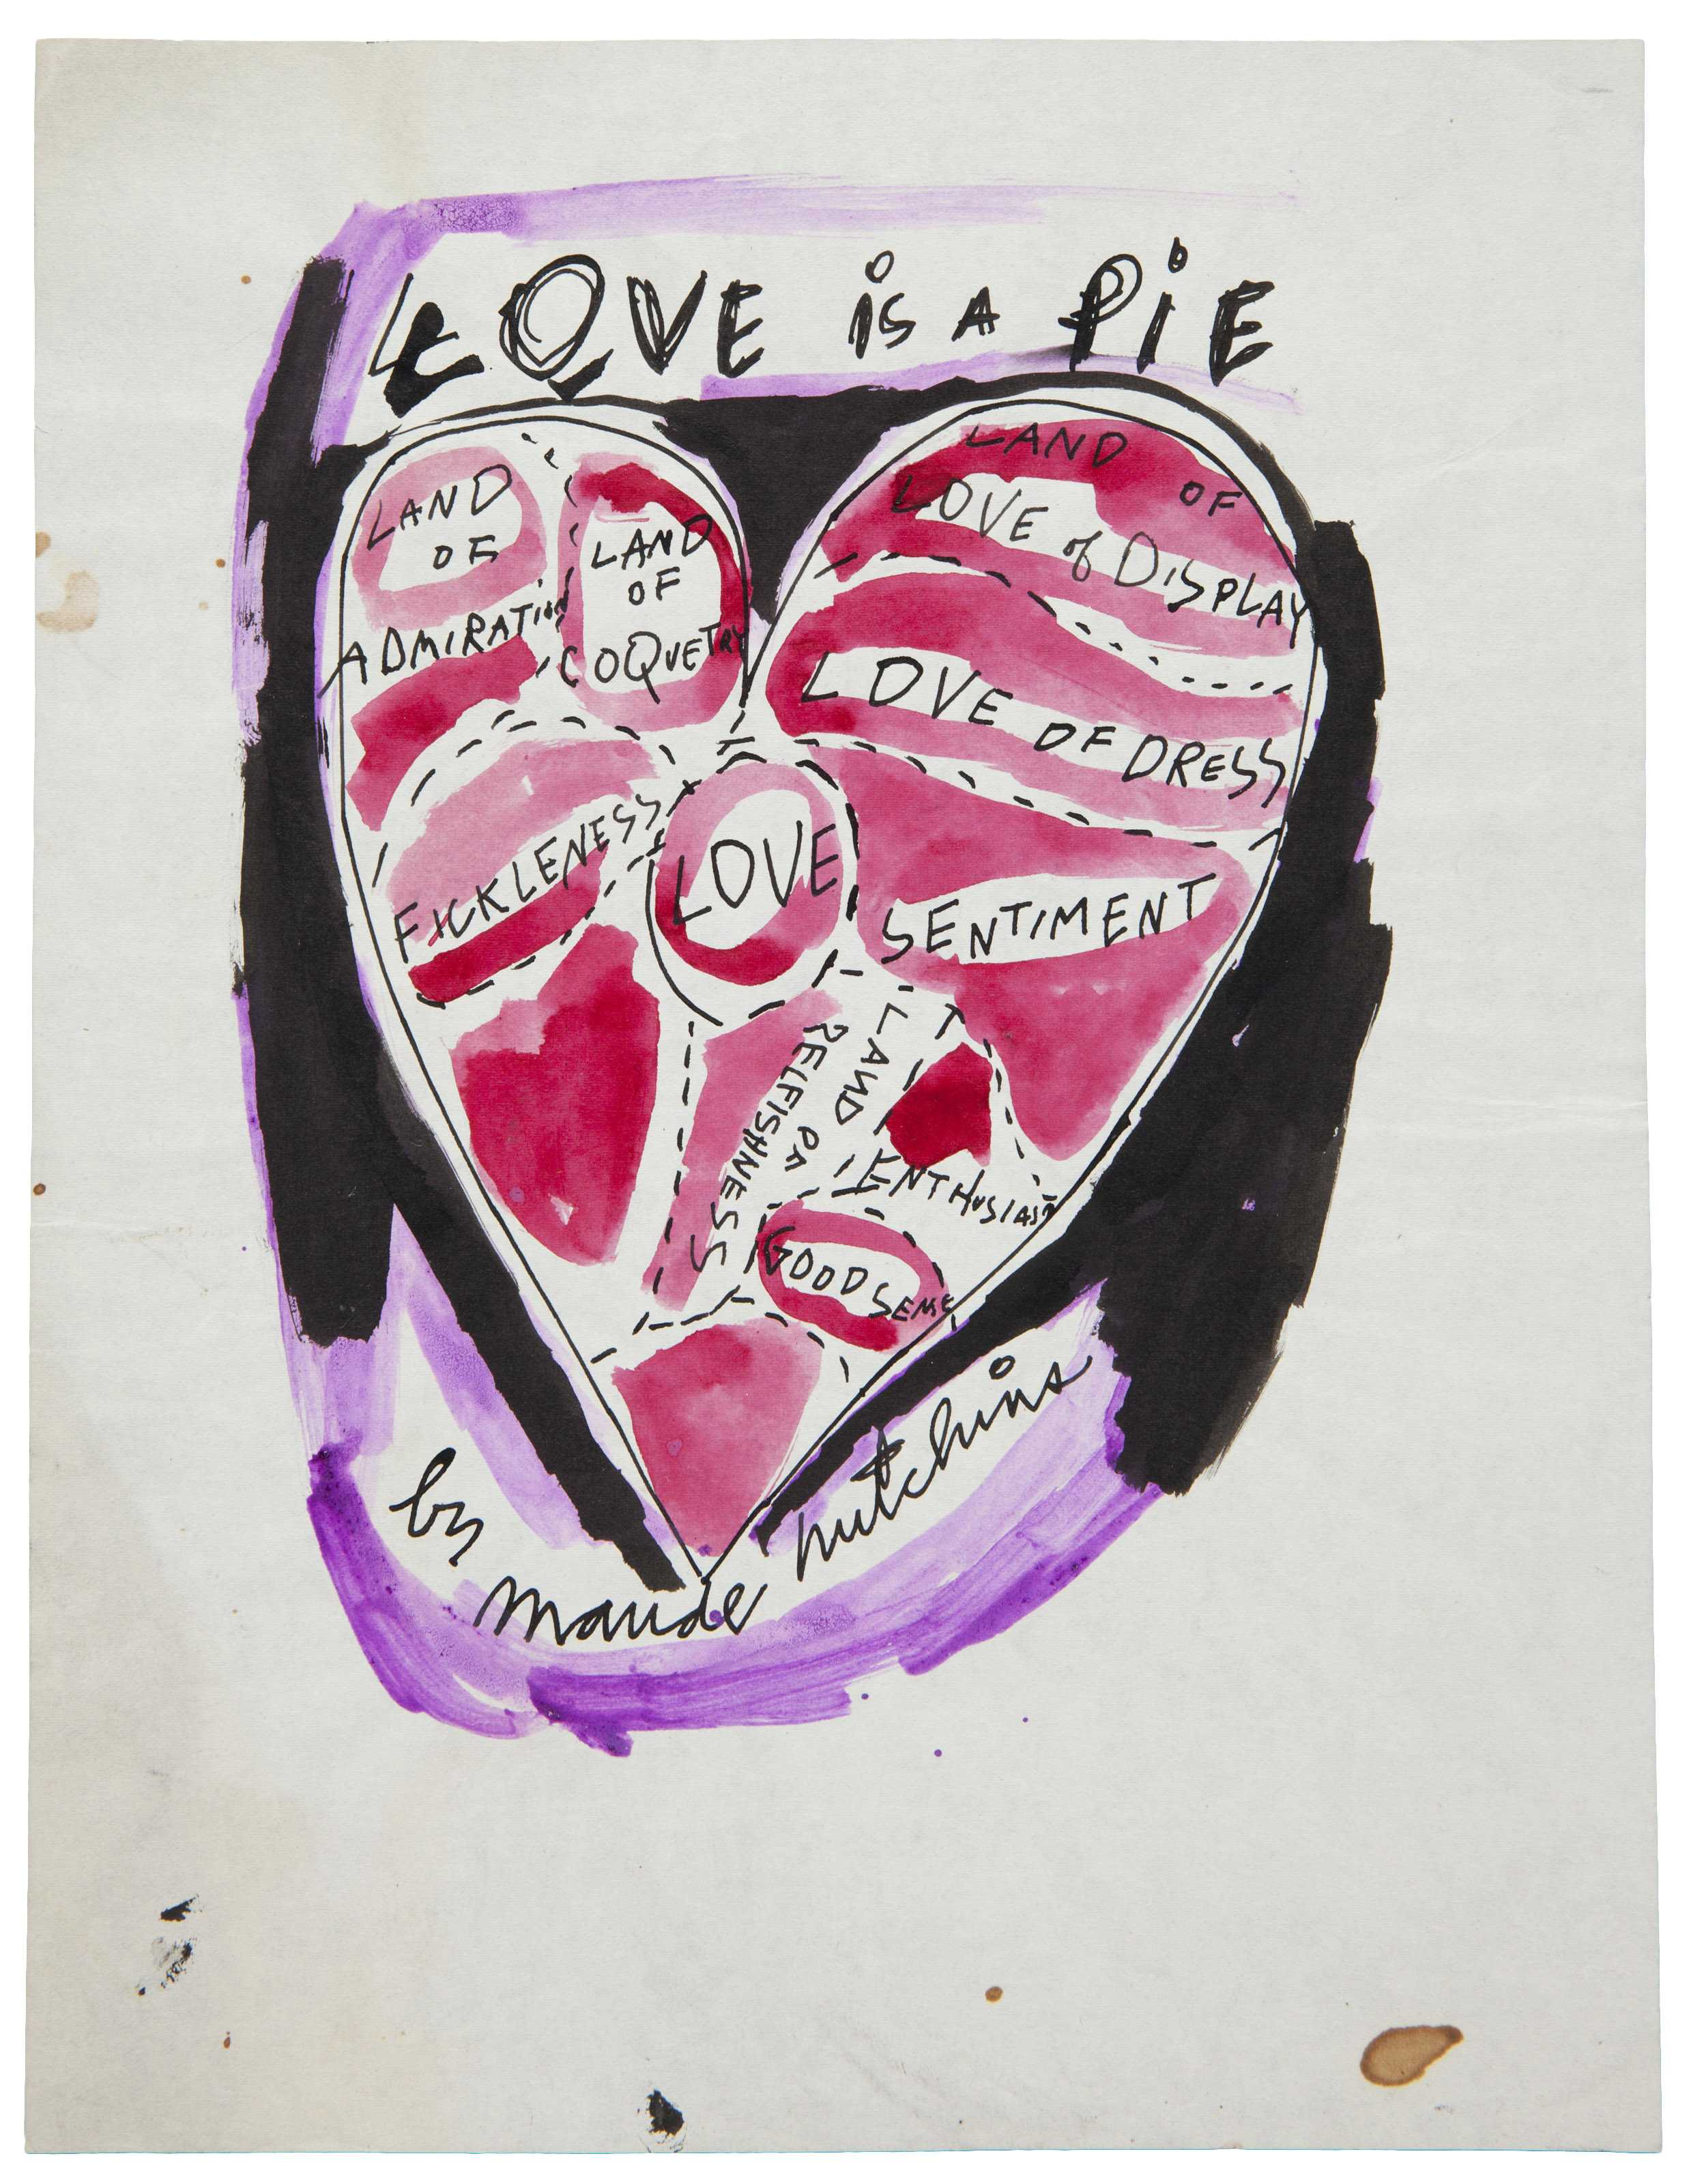 Artist: Andy Warhol | Love is a Pie